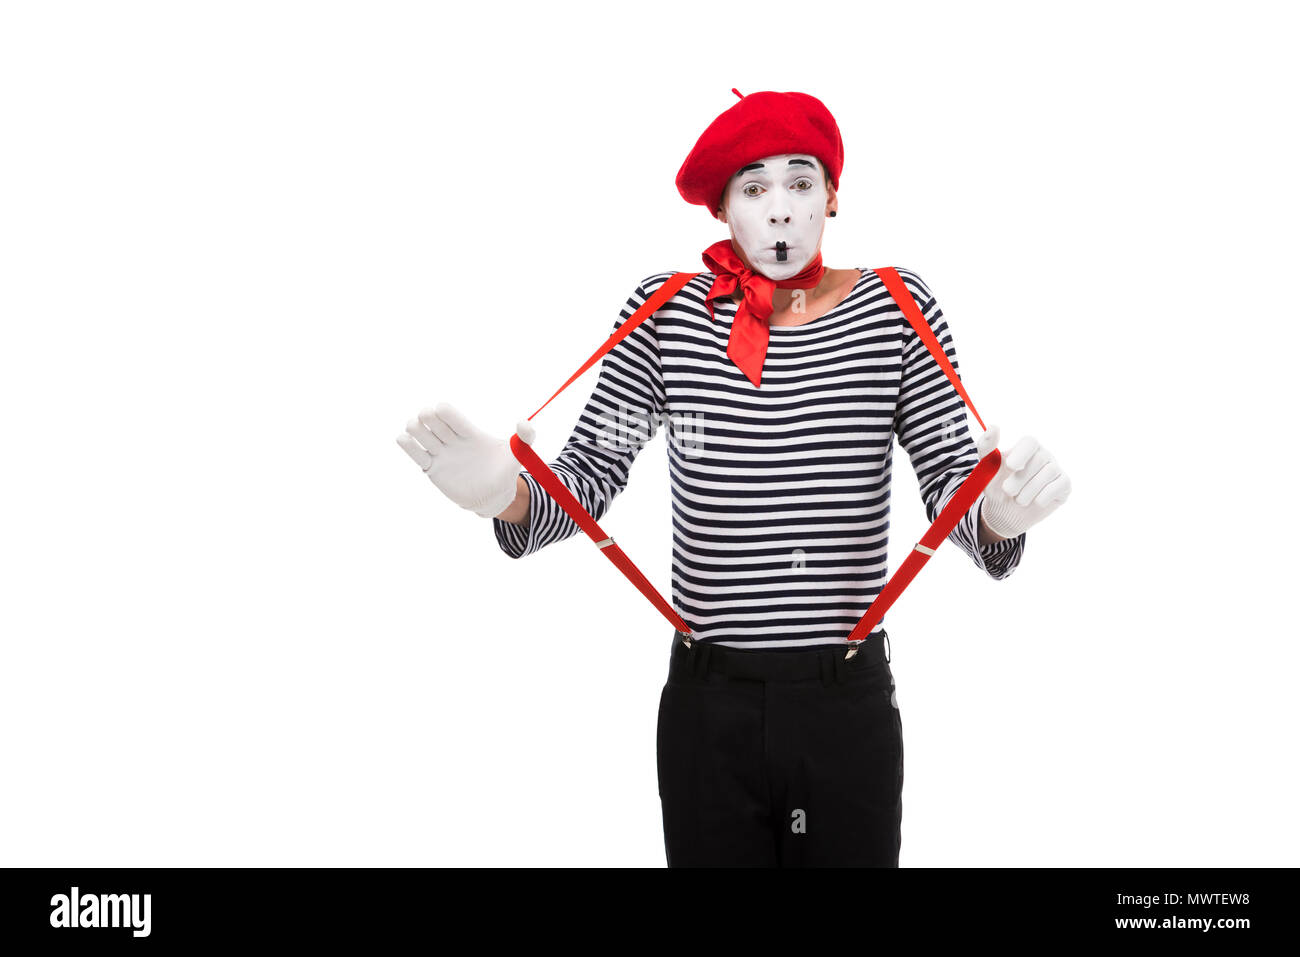 shocked mime with red suspenders isolated on white - Stock Image